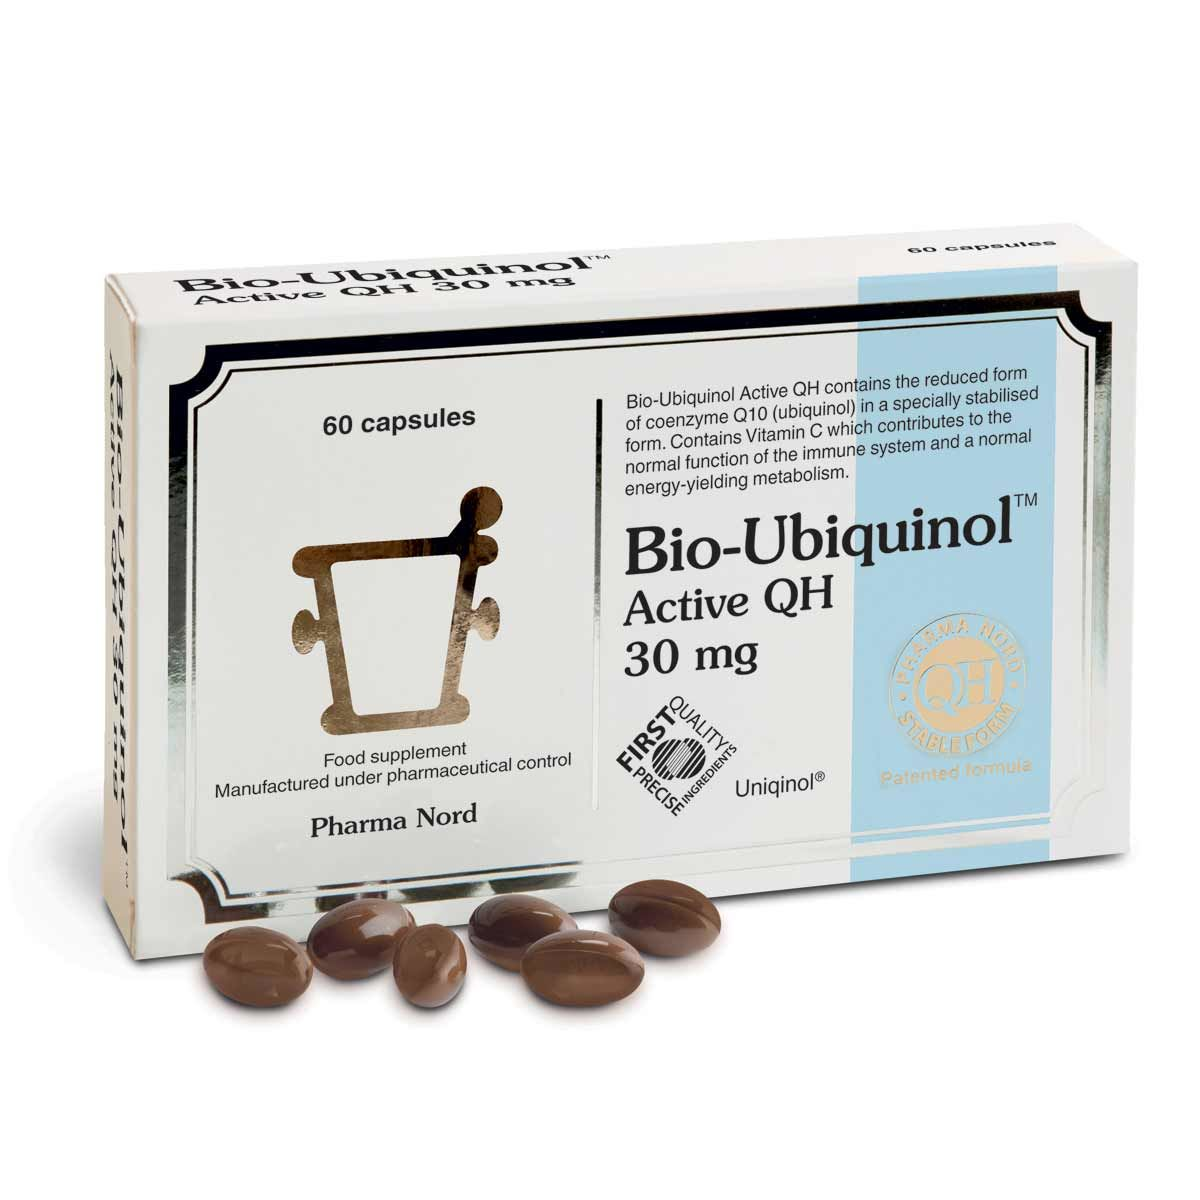 Bio-Ubiquinol Active QH 30mg 60's